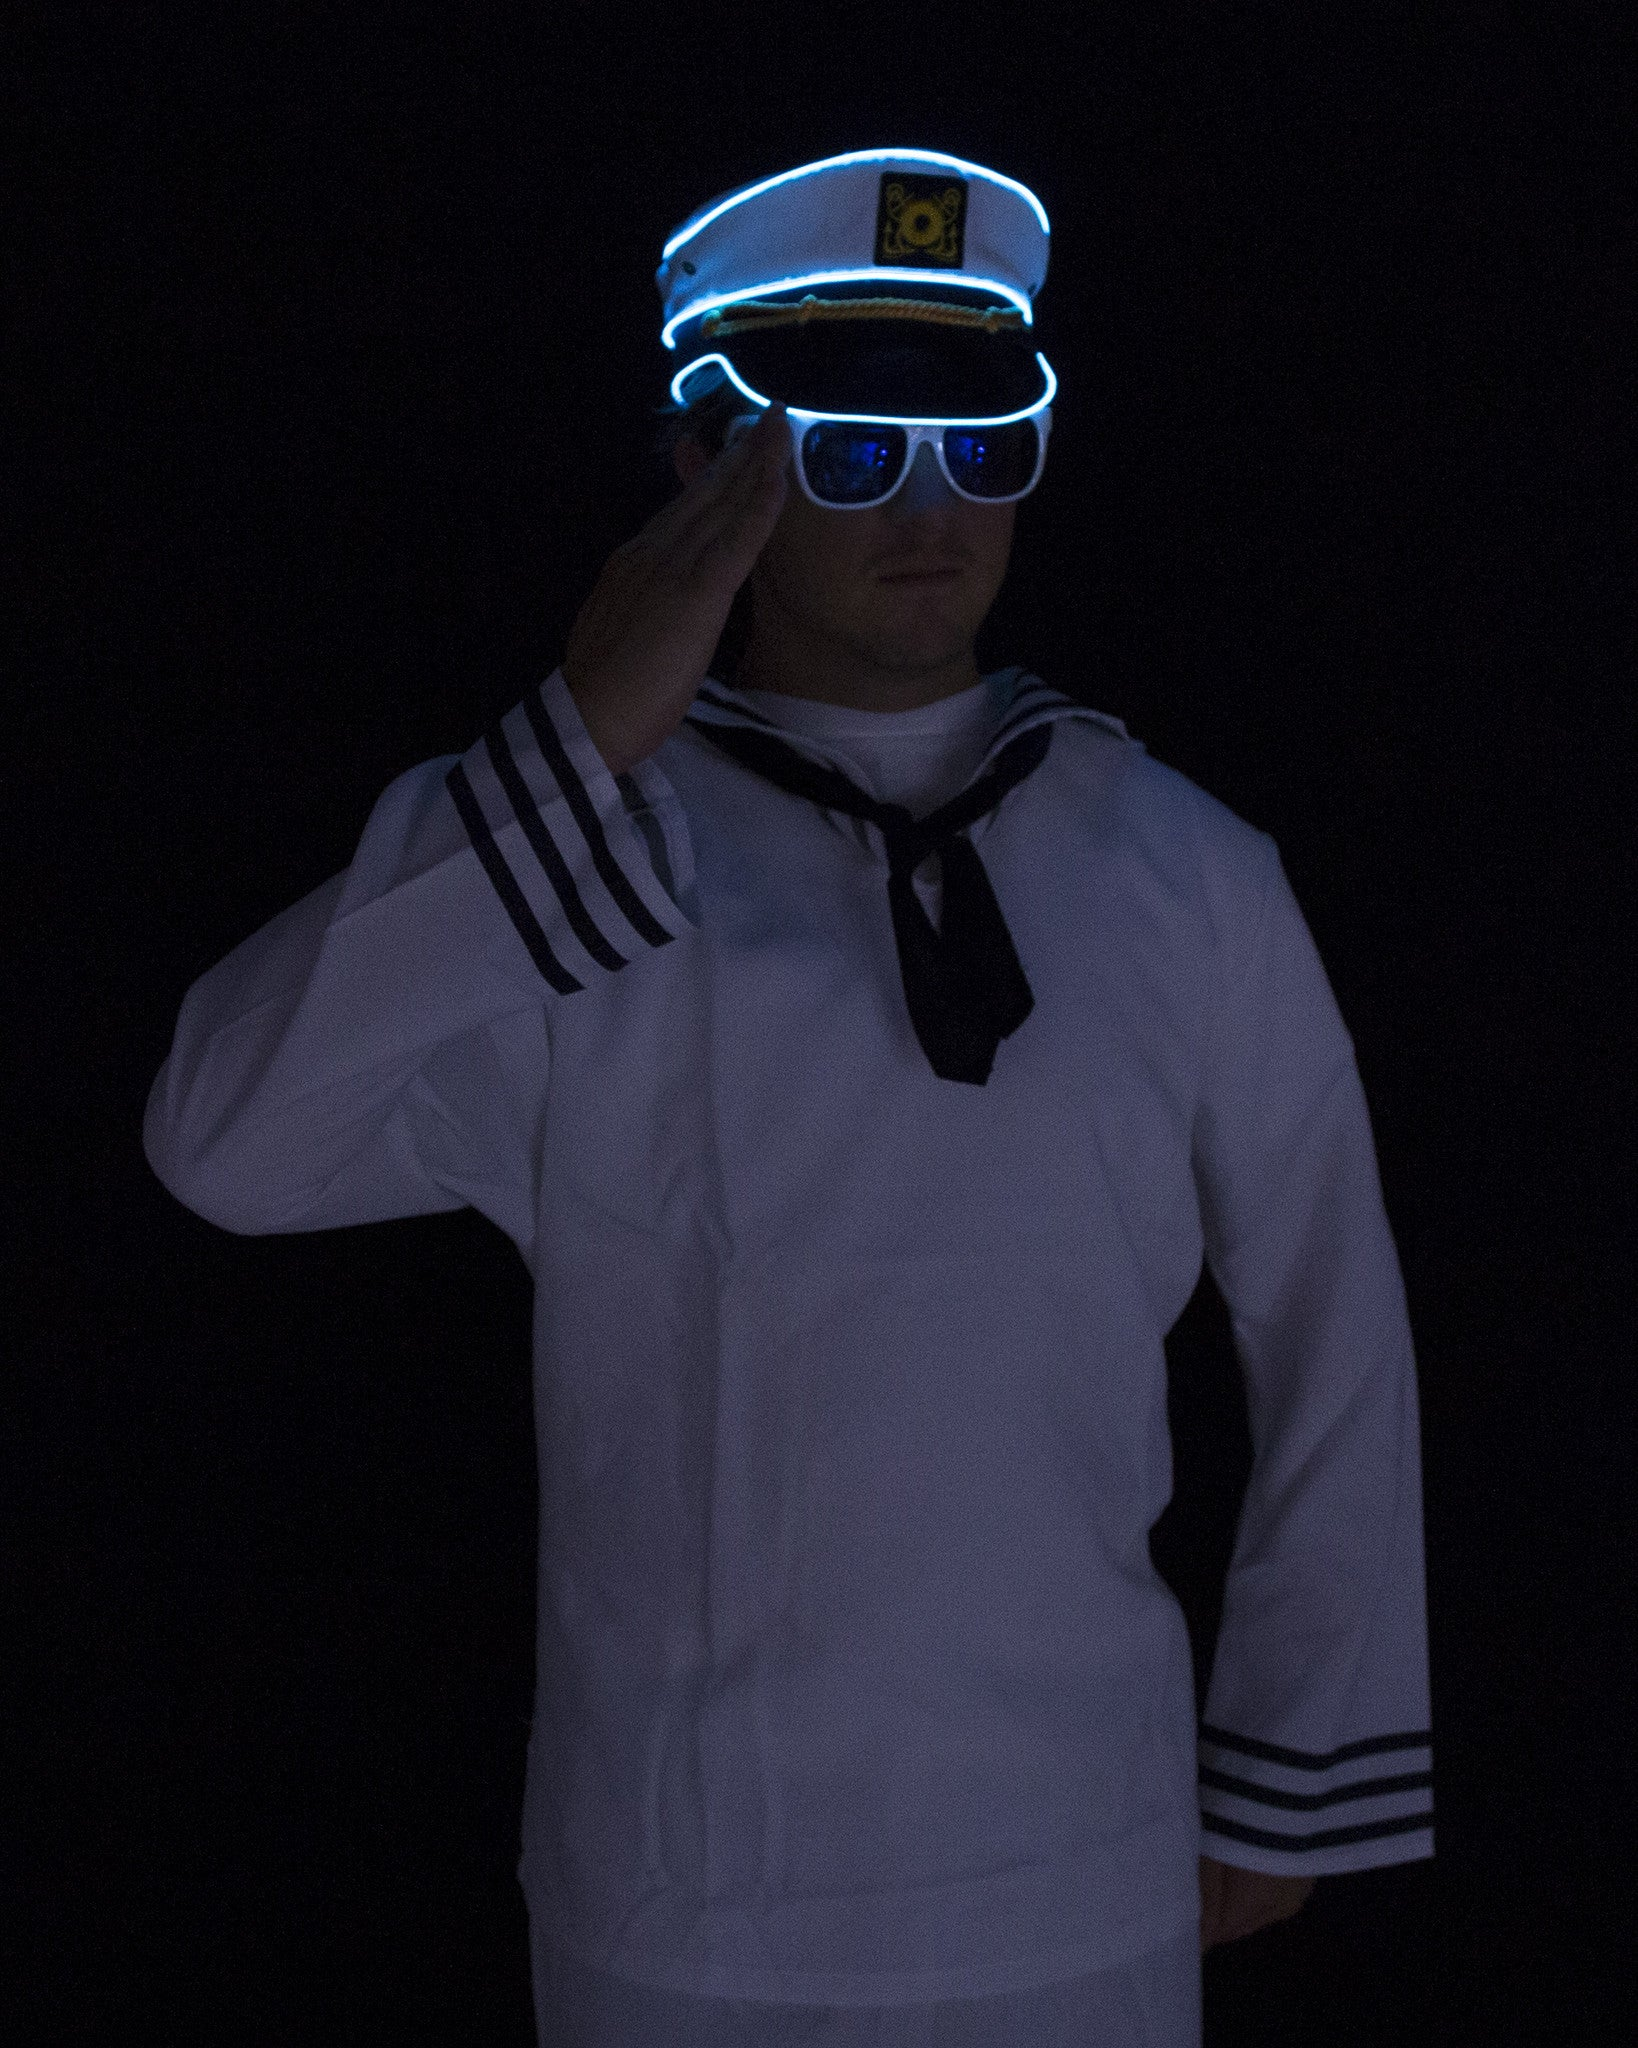 Light Up Navy Sailor Hat - Electric Styles | World's Number 1 Light Up Shoe Store - {product_type}} - Aqua - 7